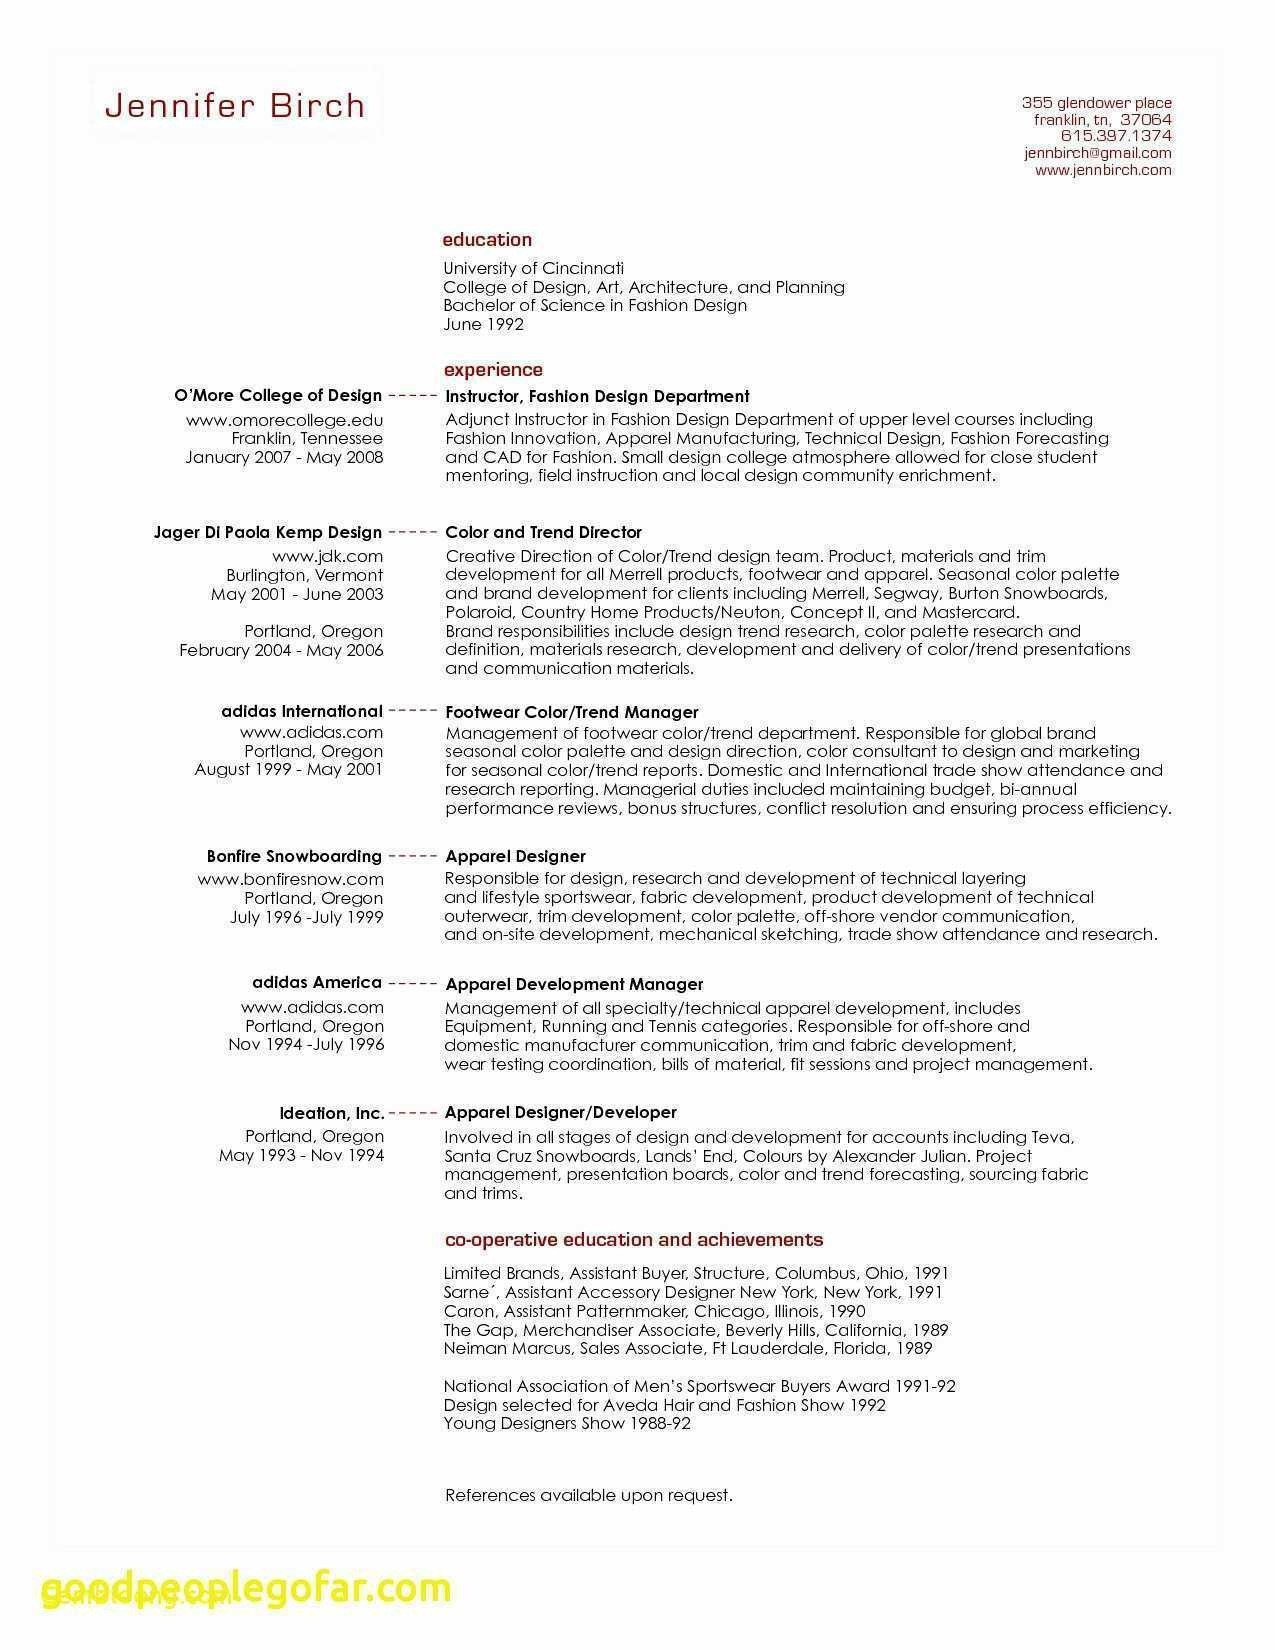 Resumes for Law School - Resume for Law School Best Luxury Law School Resume Sample New 57